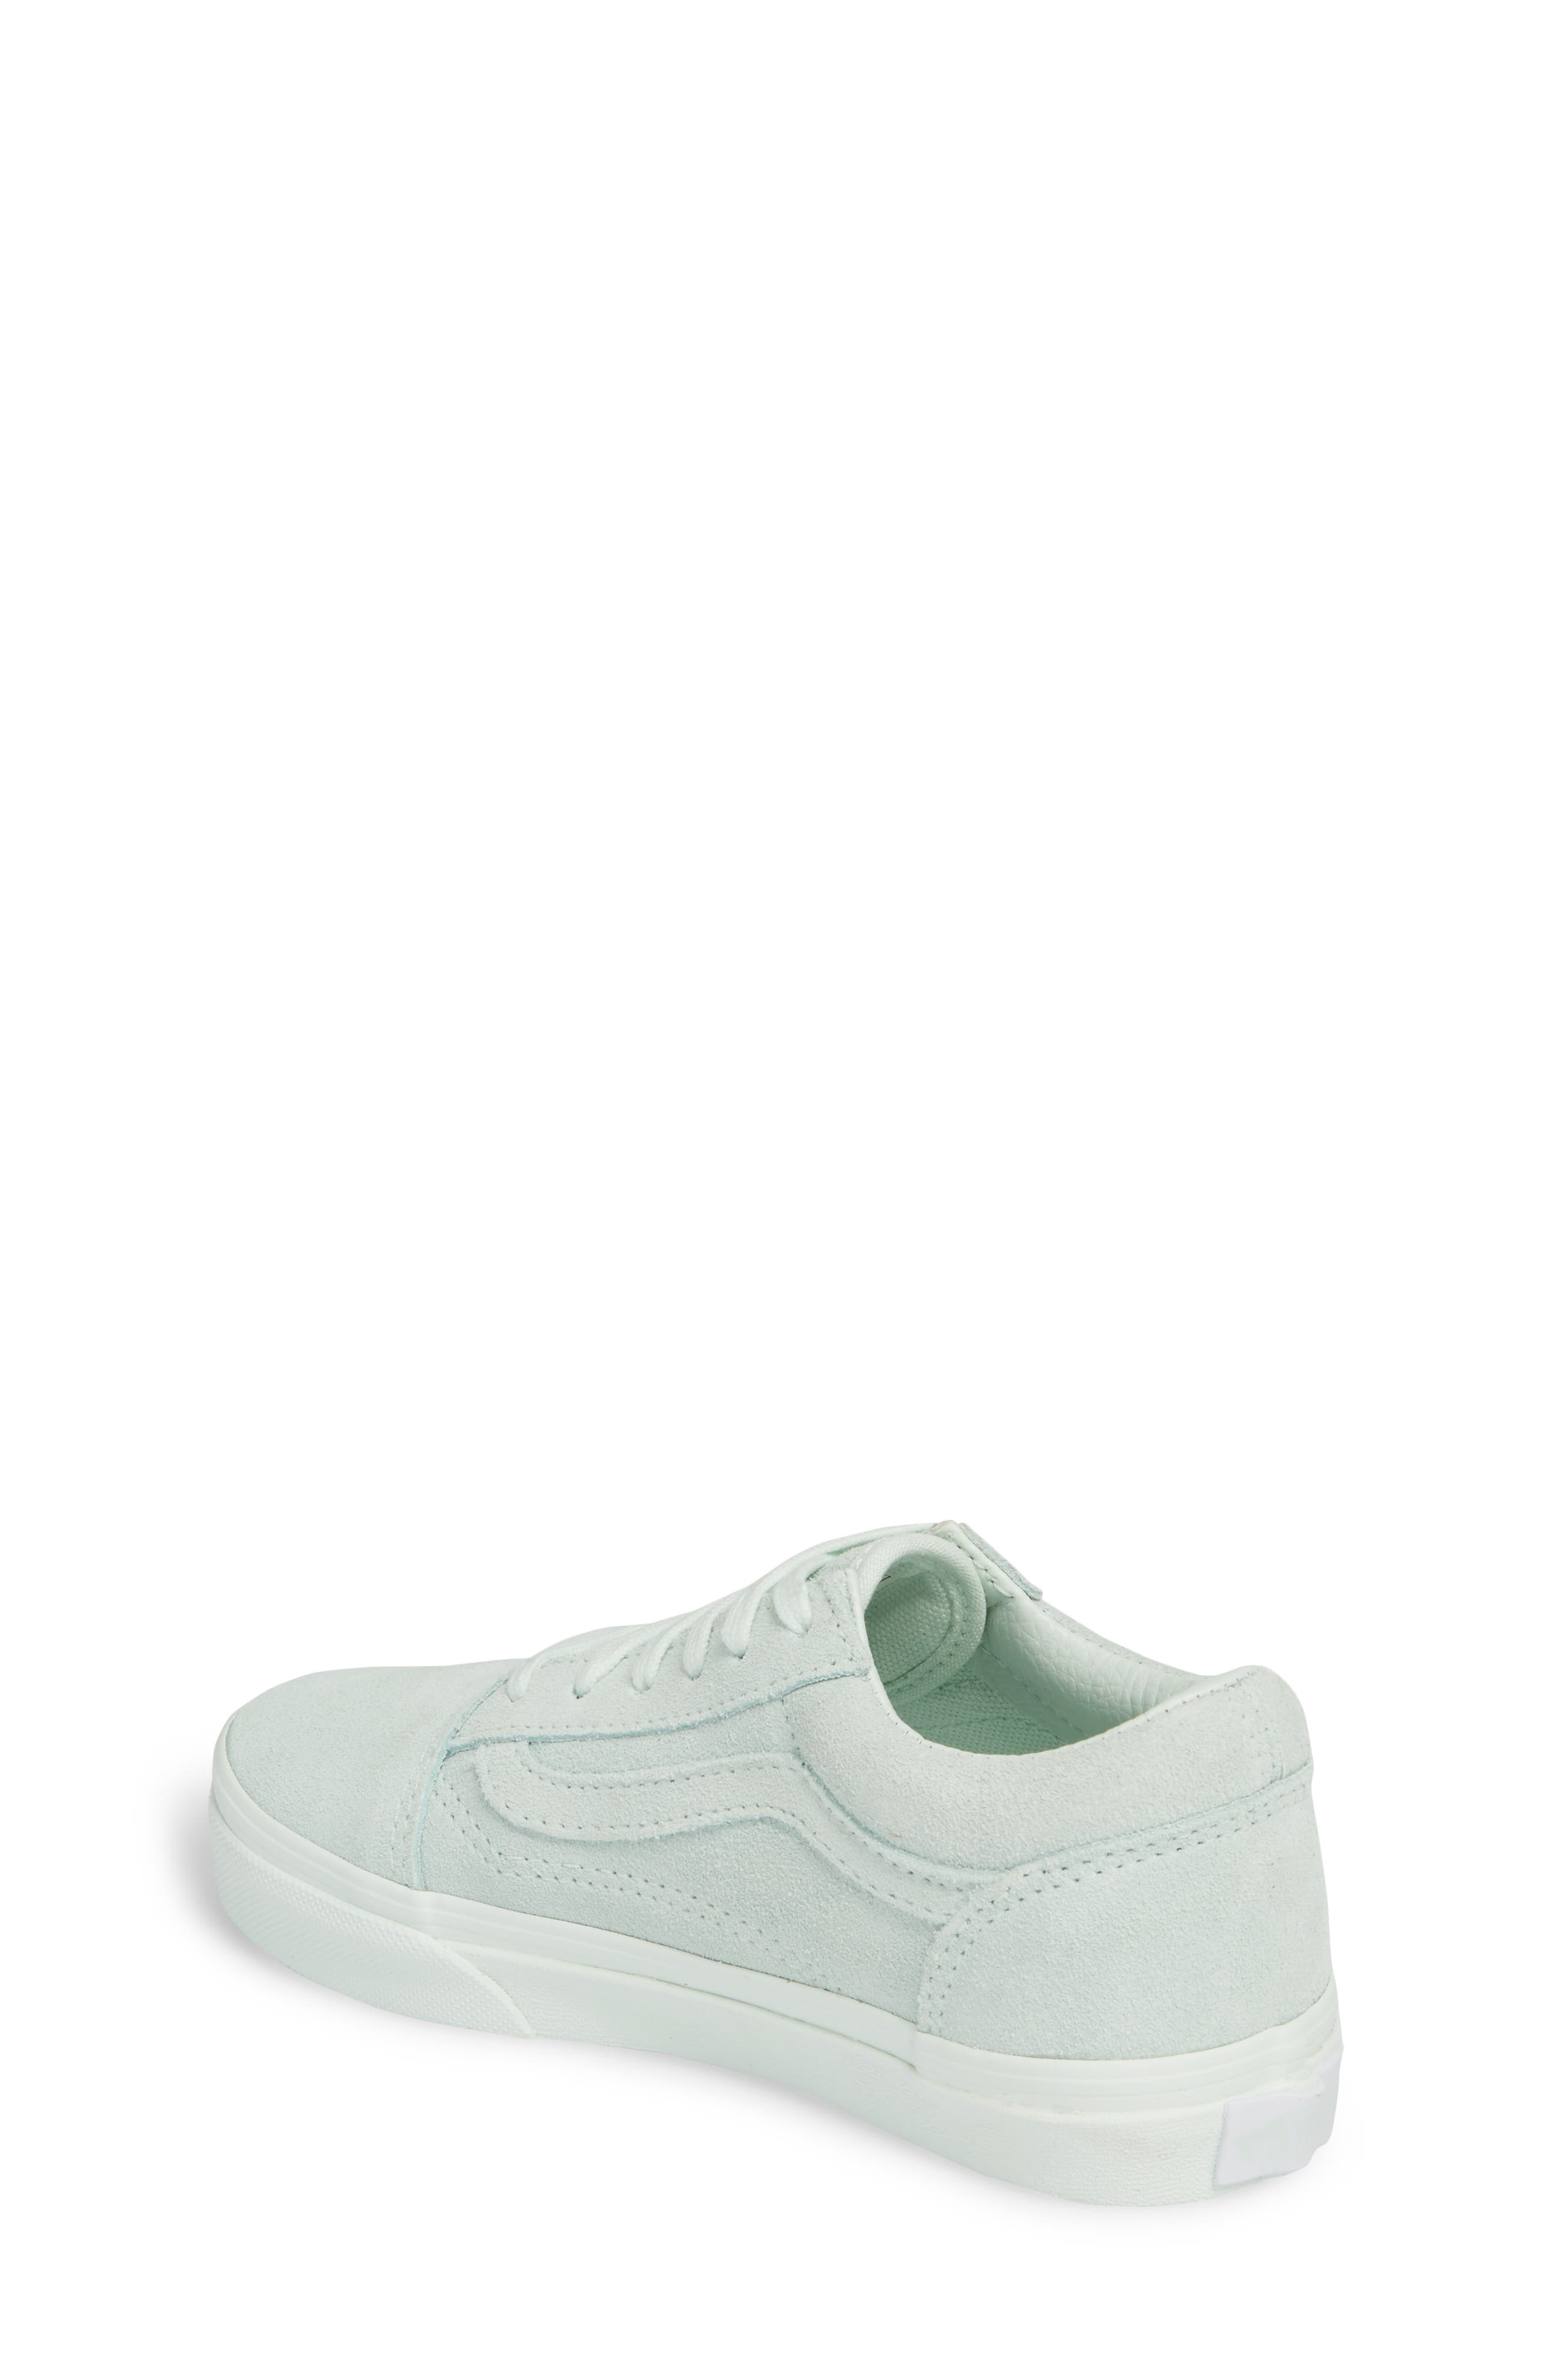 Old Skool Low Top Sneaker,                             Alternate thumbnail 2, color,                             Suede Mono/ Aqua Glass